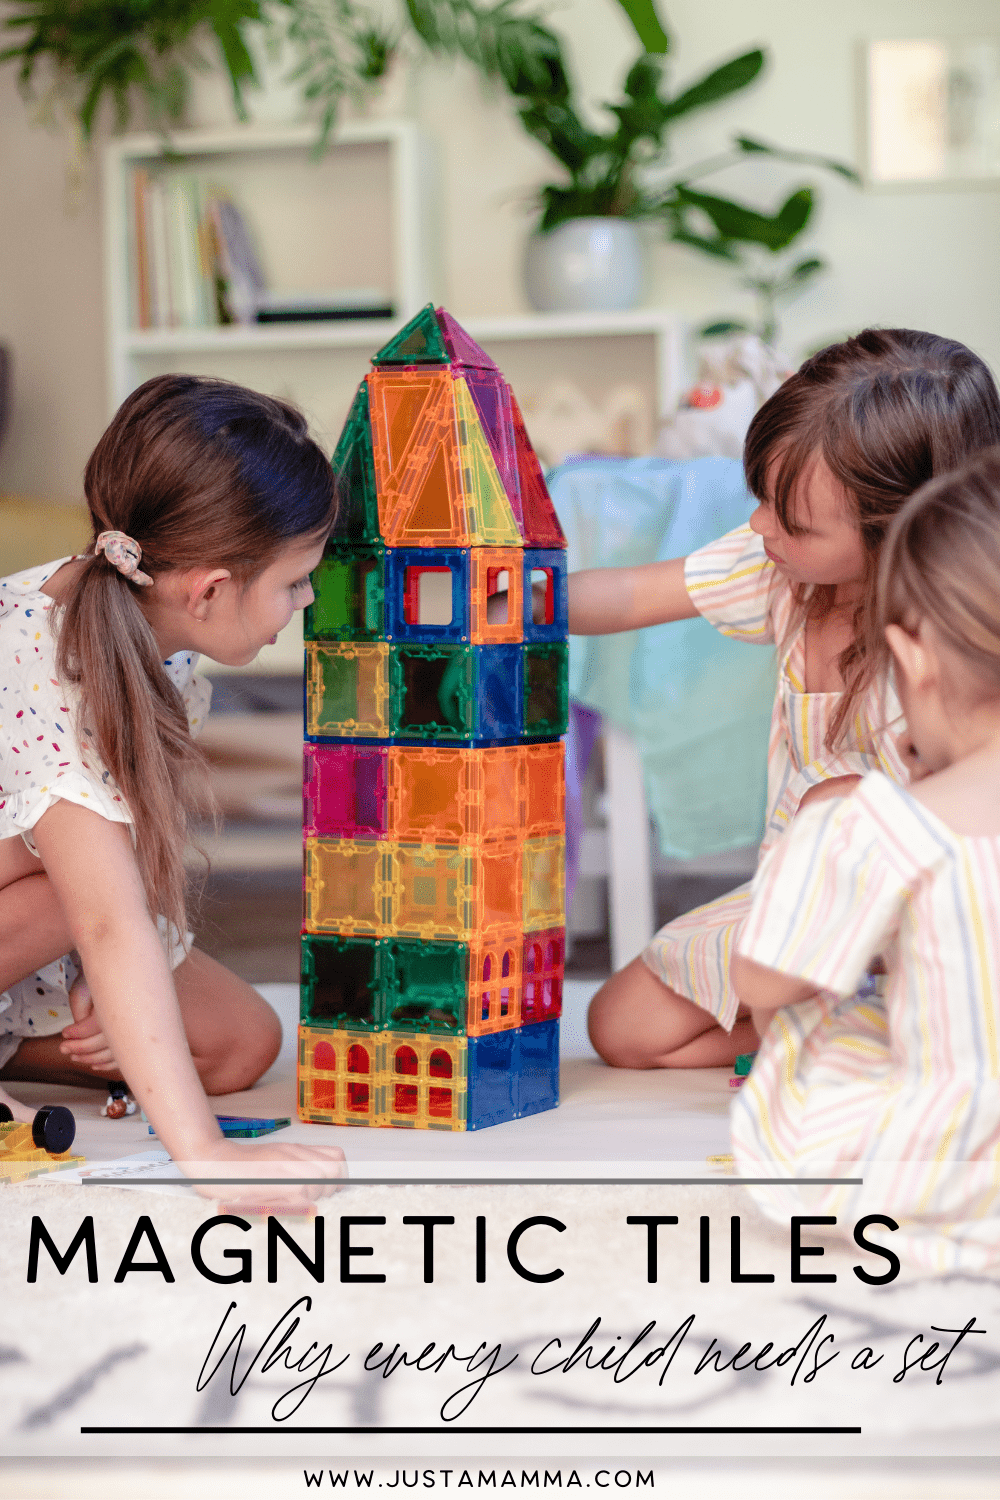 Benefits Of Playing With Magnetic Tiles